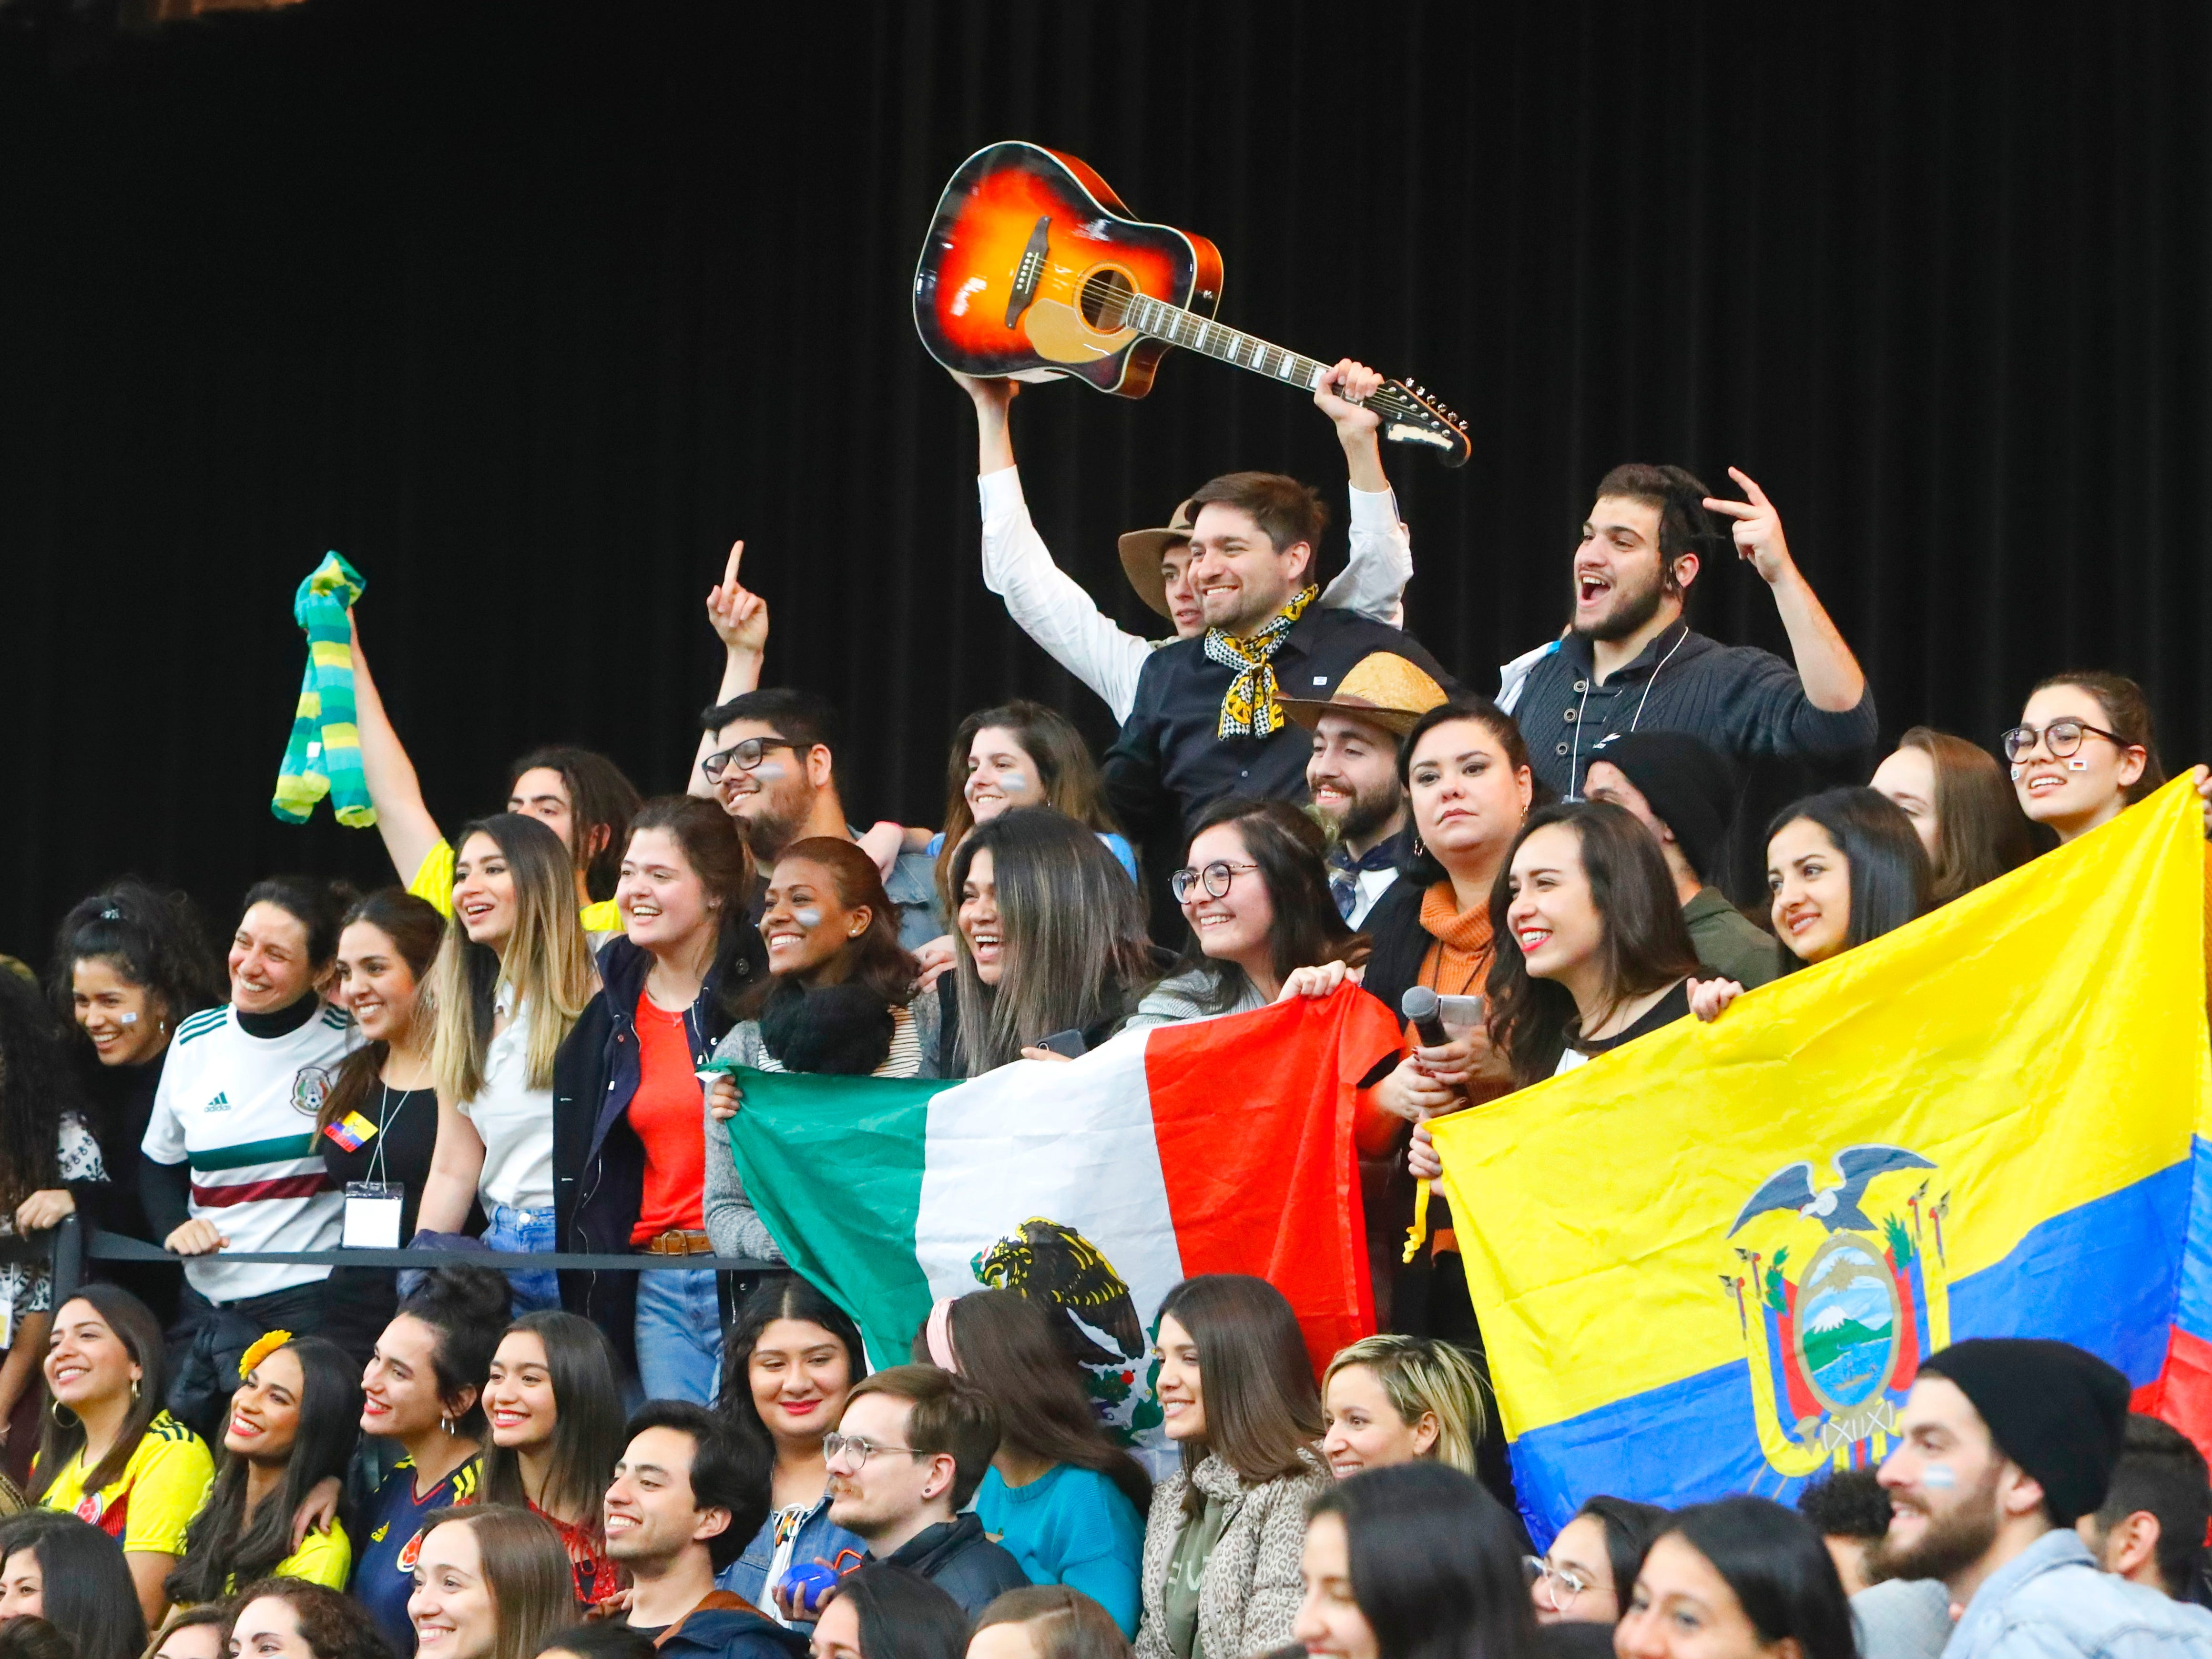 Students from the Bethel School of Supernatural Ministry pose for a group photo at the close of the annual Festival of Cultures on Feb. 9, 2019, in the Redding Civic Auditorium.